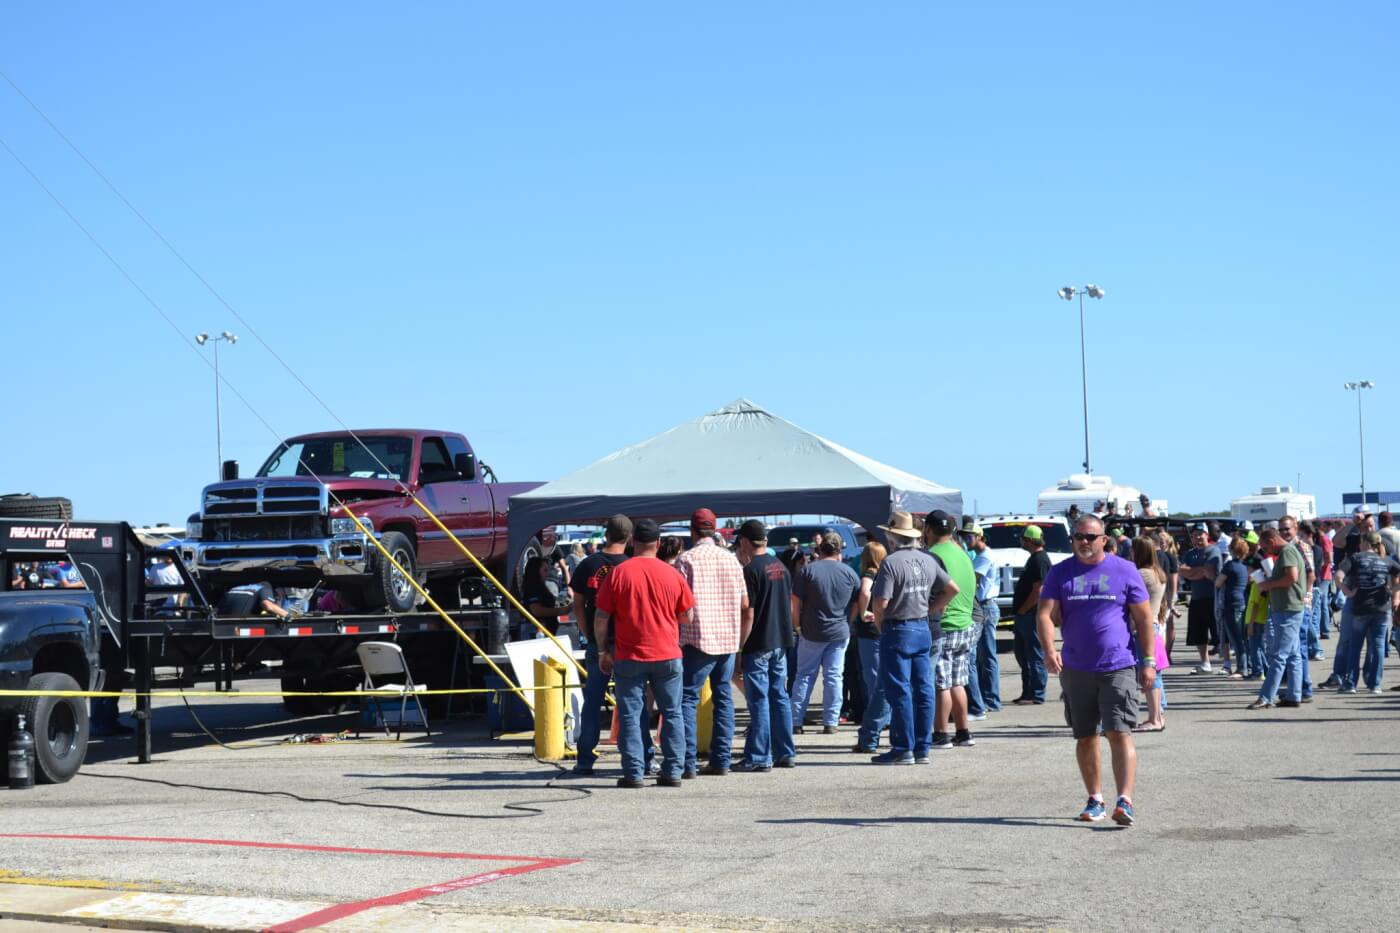 The Reality Check chassis dynomometer was on hand for anyone who wanted to test their street truck's mettle against the rollers. We were impressed by the number of powerful daily drivers, as 600-800 horsepower readings were common throughout the day.